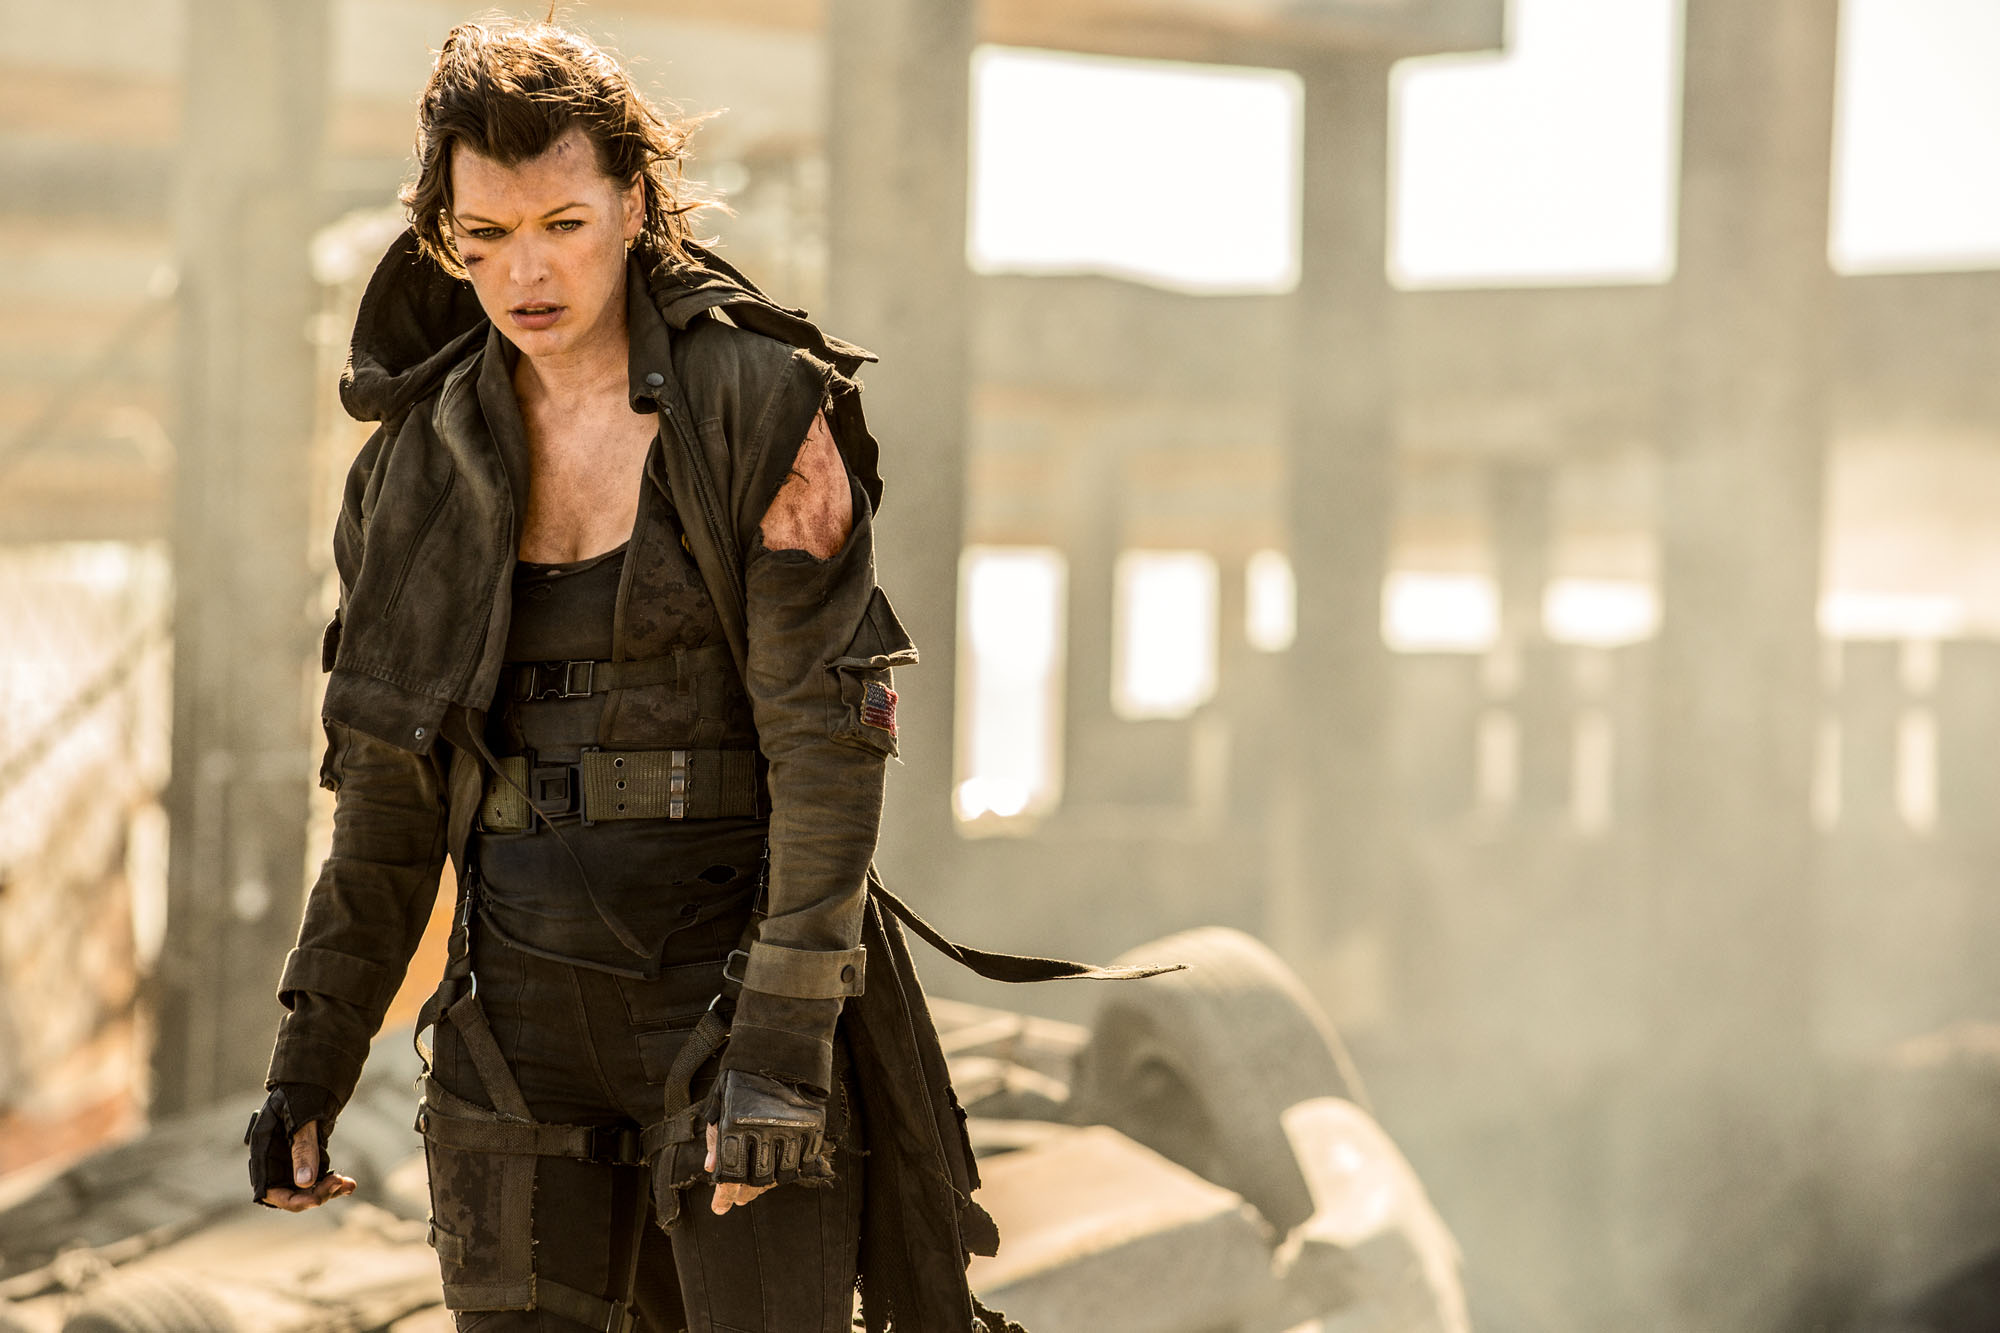 Milla Jovovich stars in Screen Gems